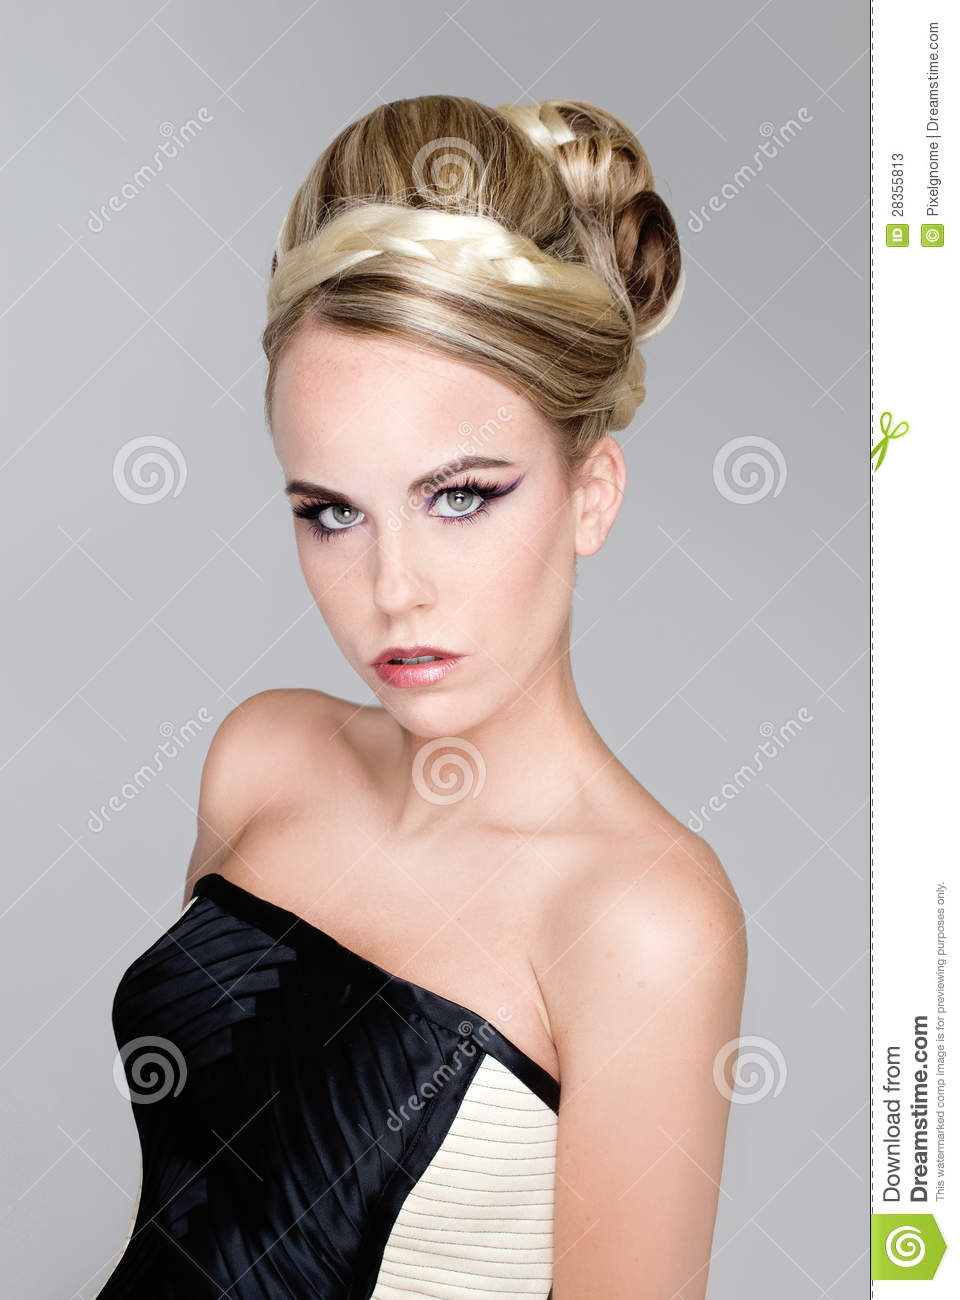 salon fashion hair model stock photos image 28355813